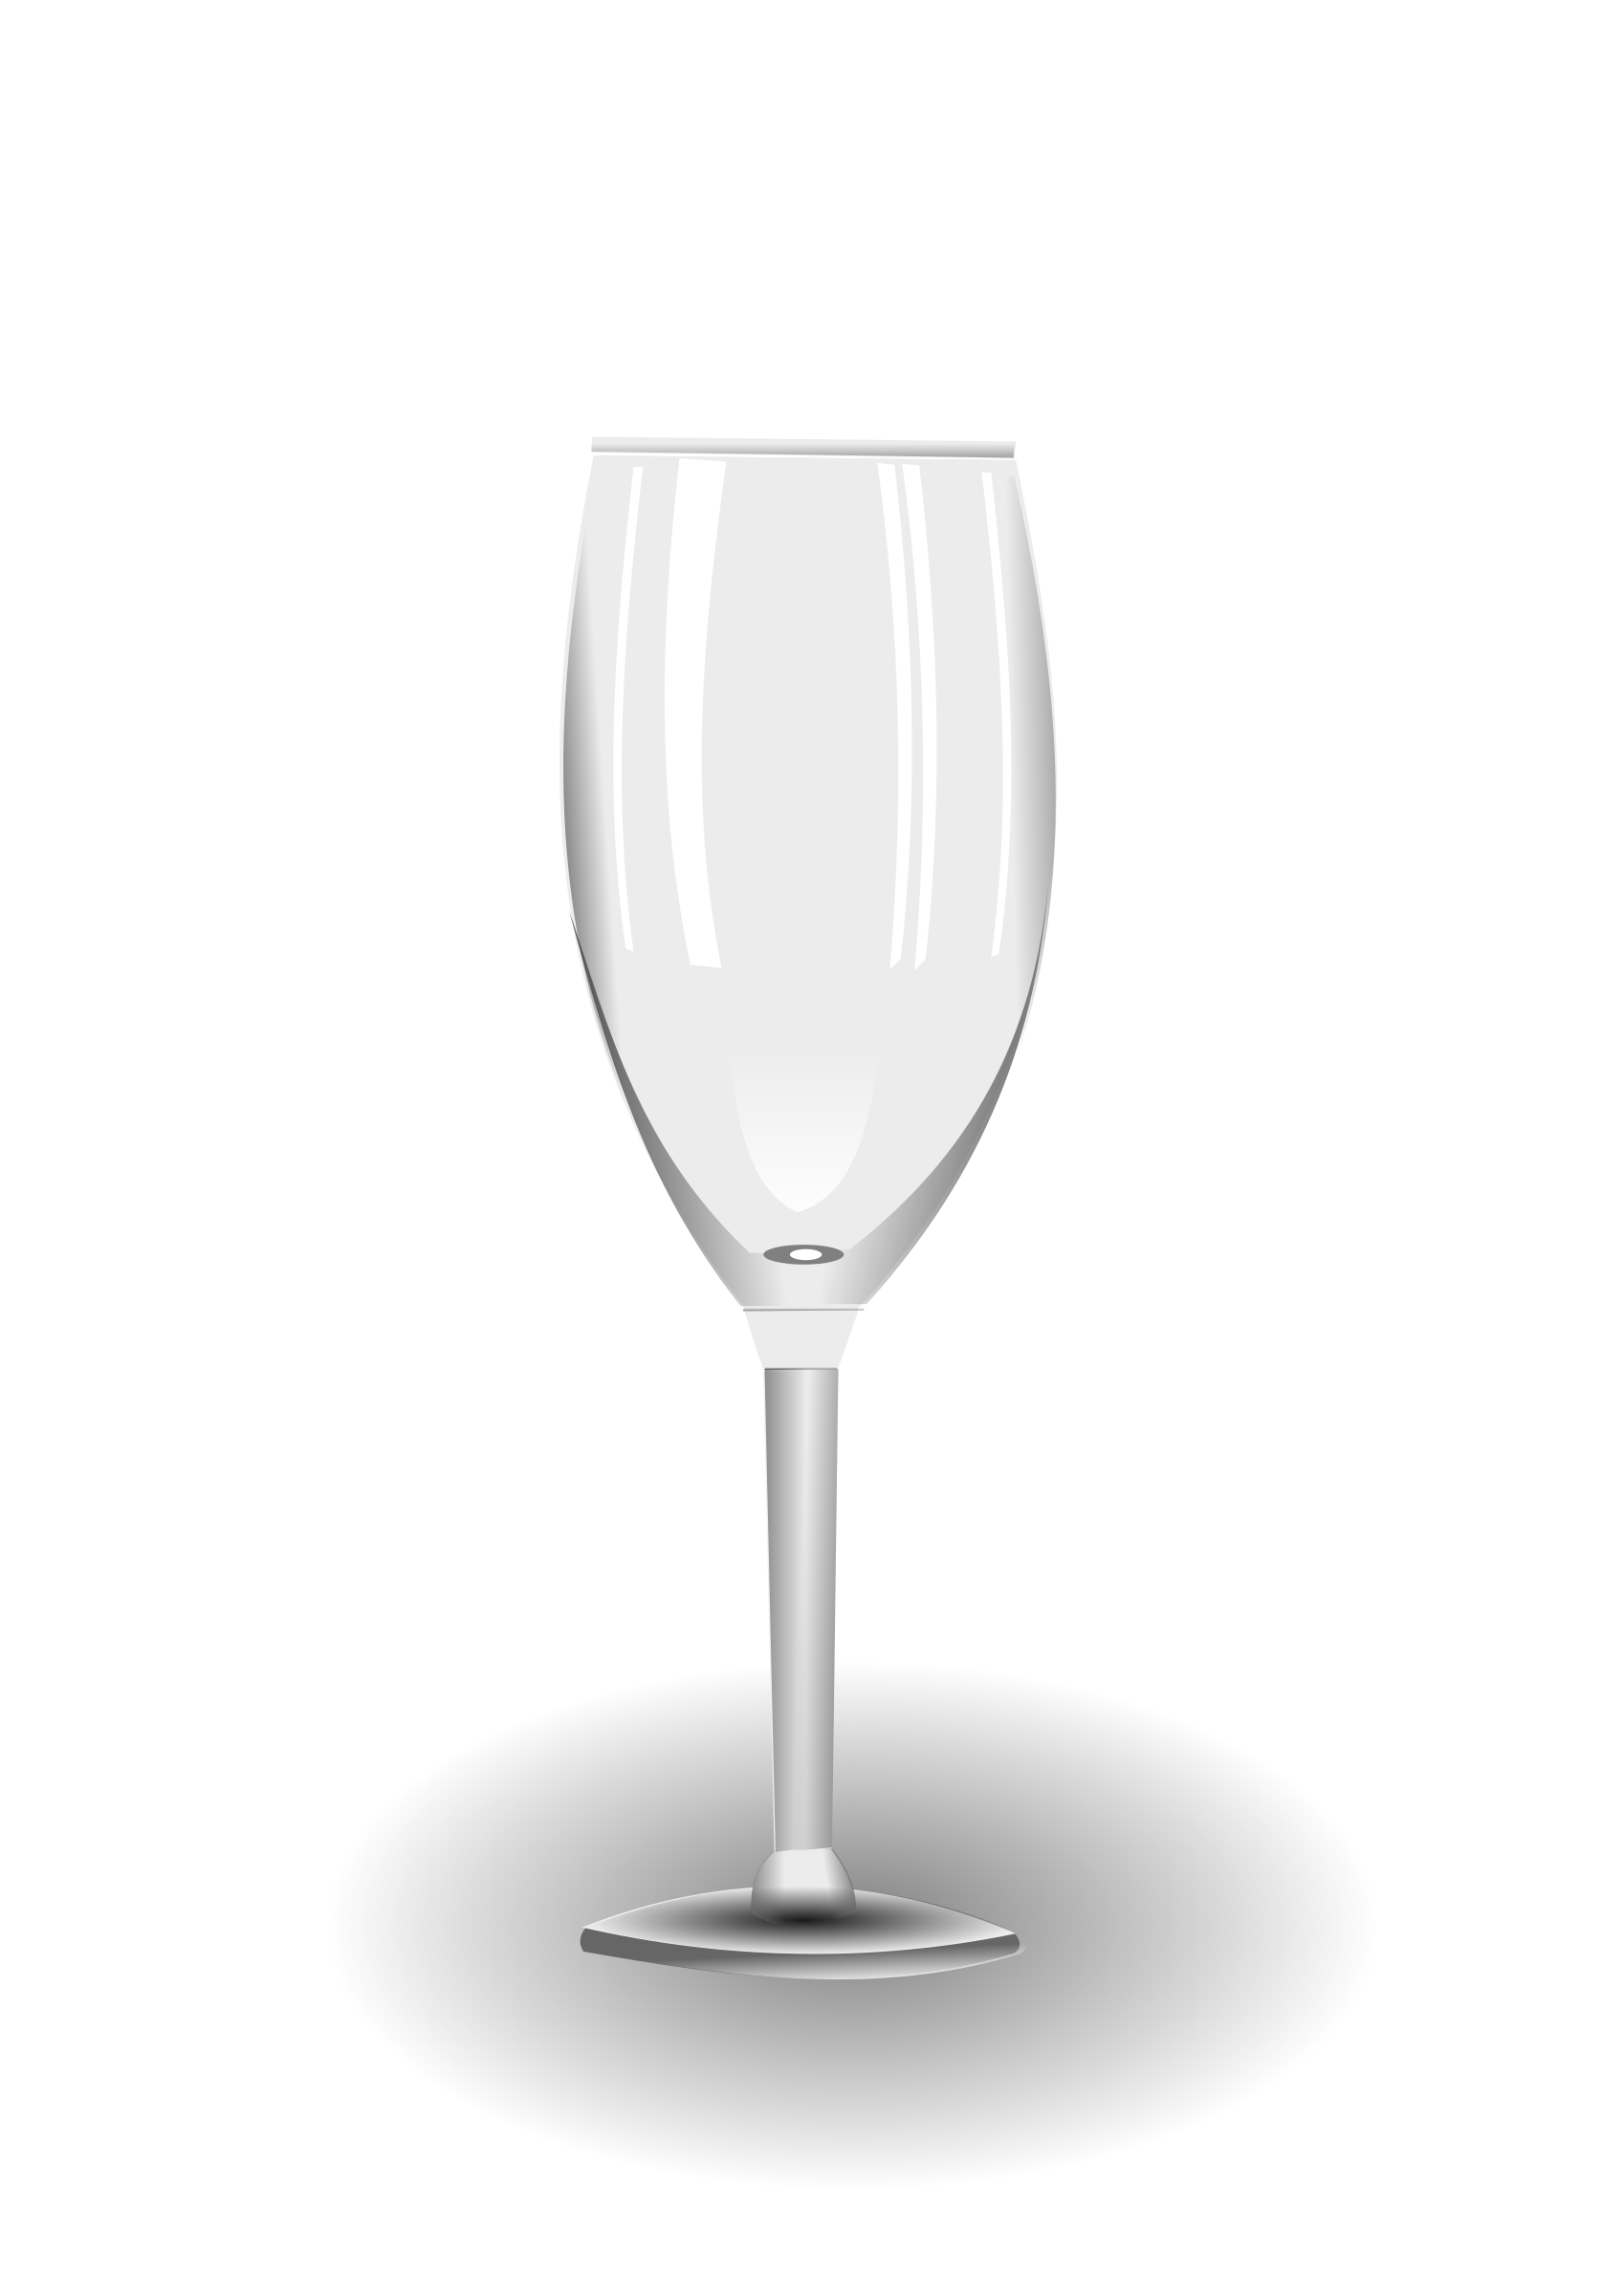 Wine big image png. Glass clipart empty glass